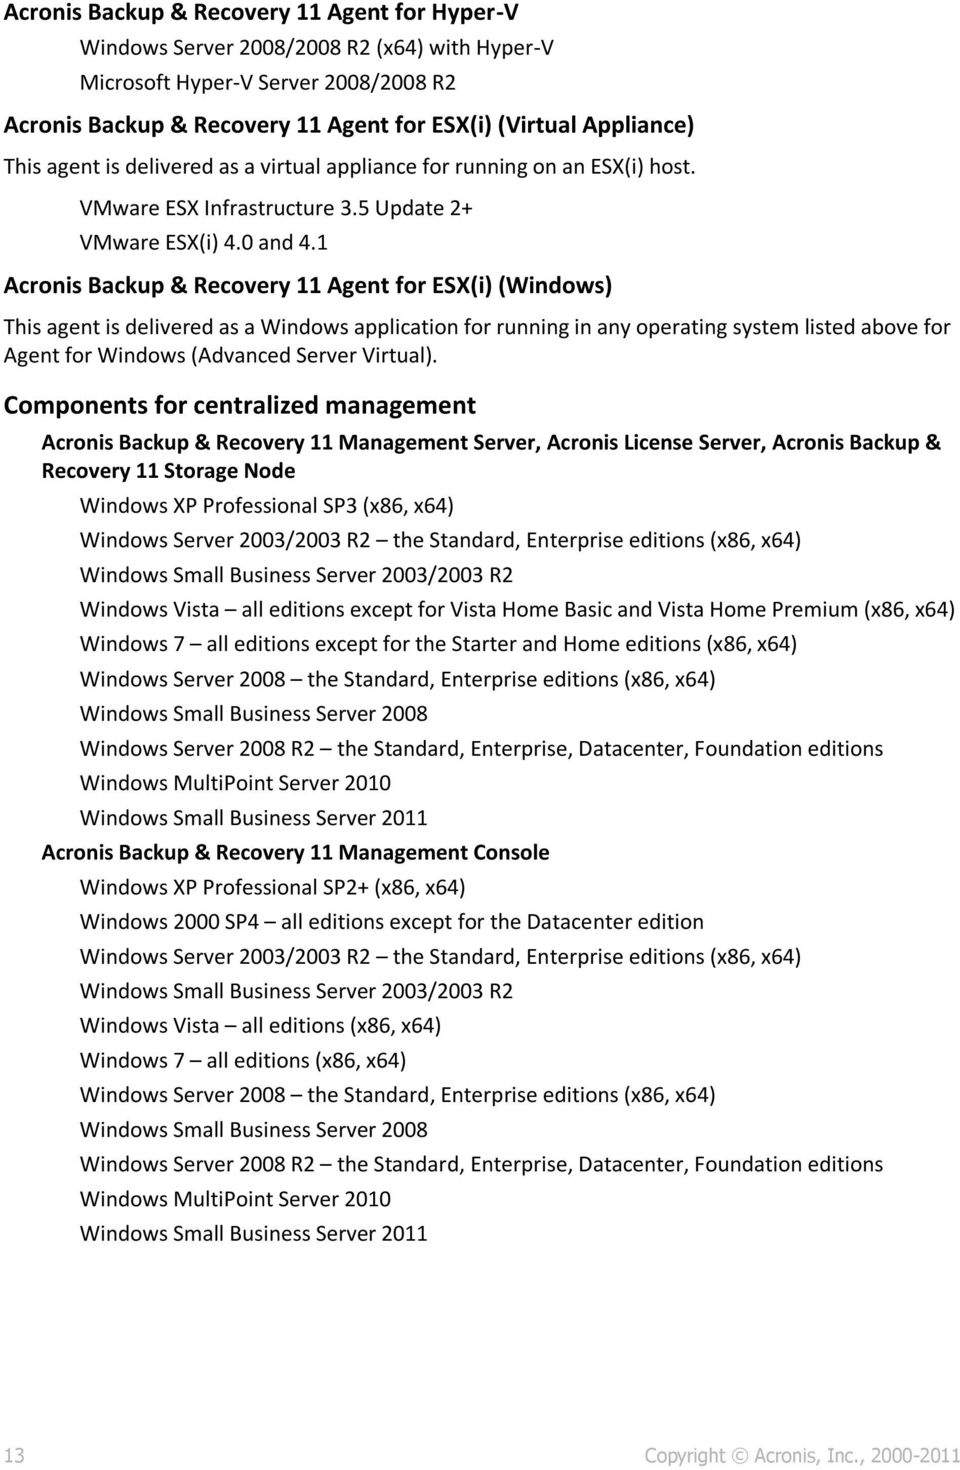 1 Acronis Backup & Recovery 11 Agent for ESX(i) (Windows) This agent is delivered as a Windows application for running in any operating system listed above for Agent for Windows (Advanced Server